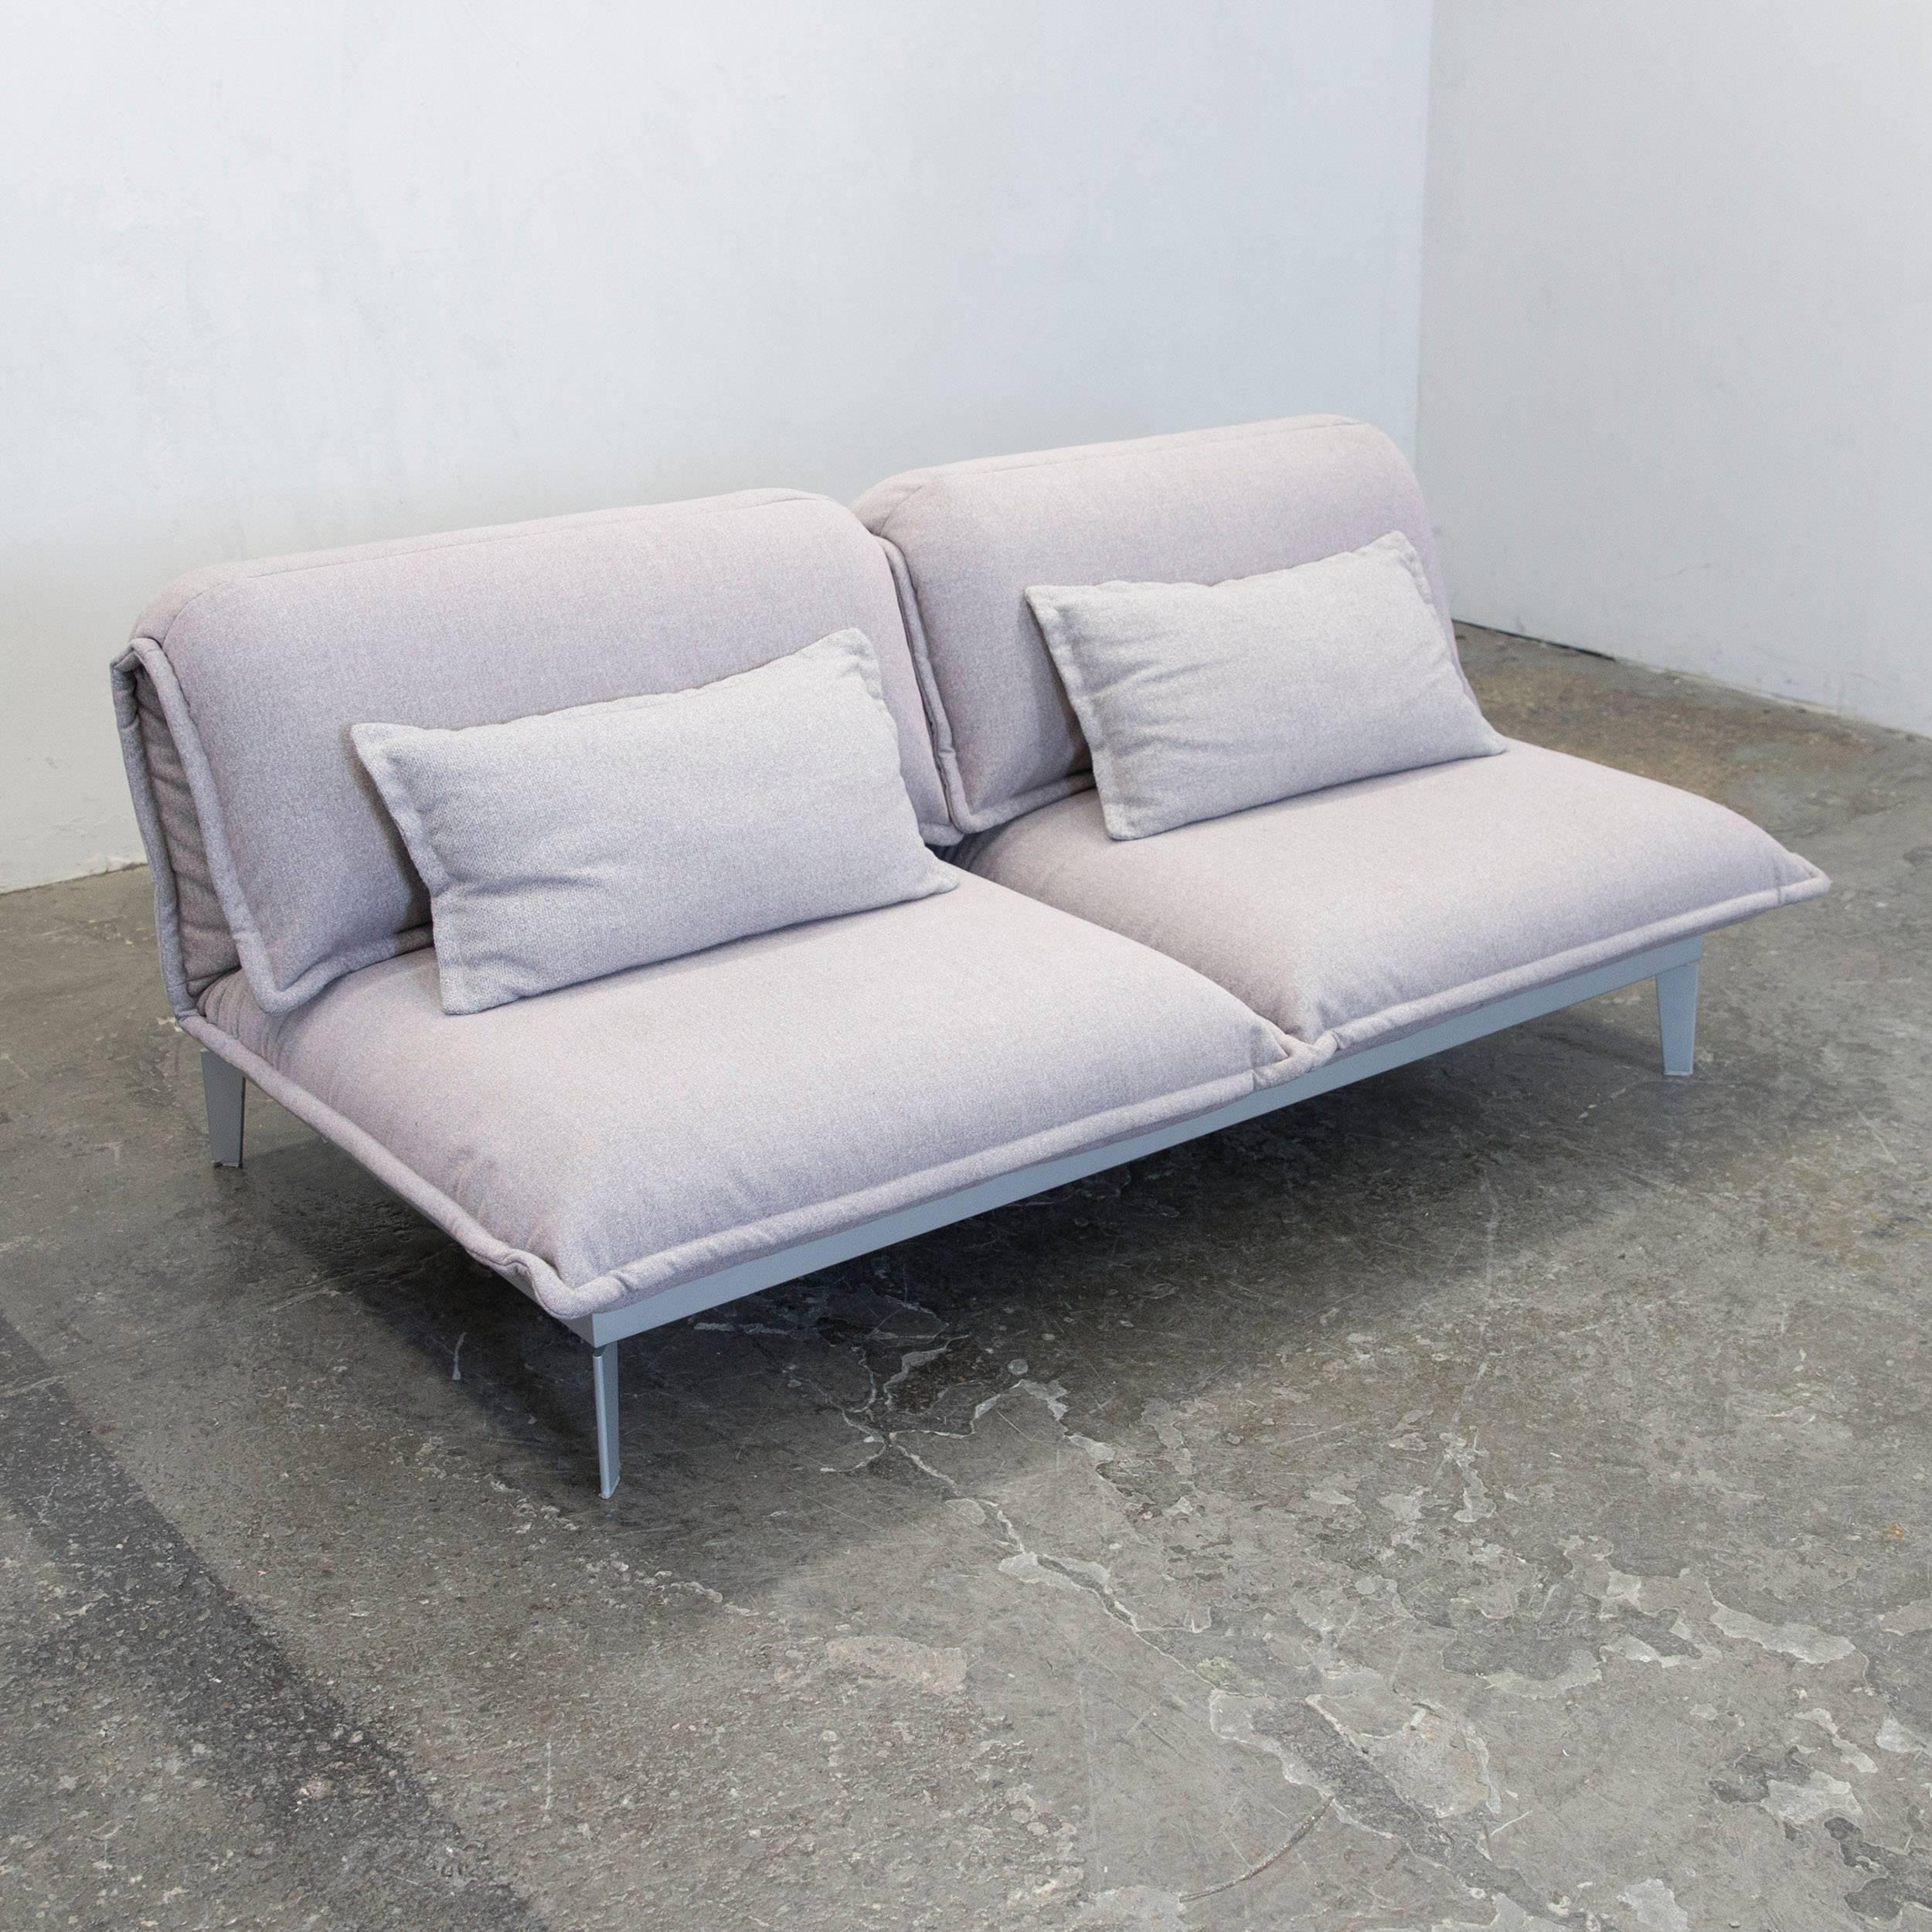 German Rolf Benz Nova Designer Sofa Grey Rose Lilac Fabric Two Seat  Function Couch For